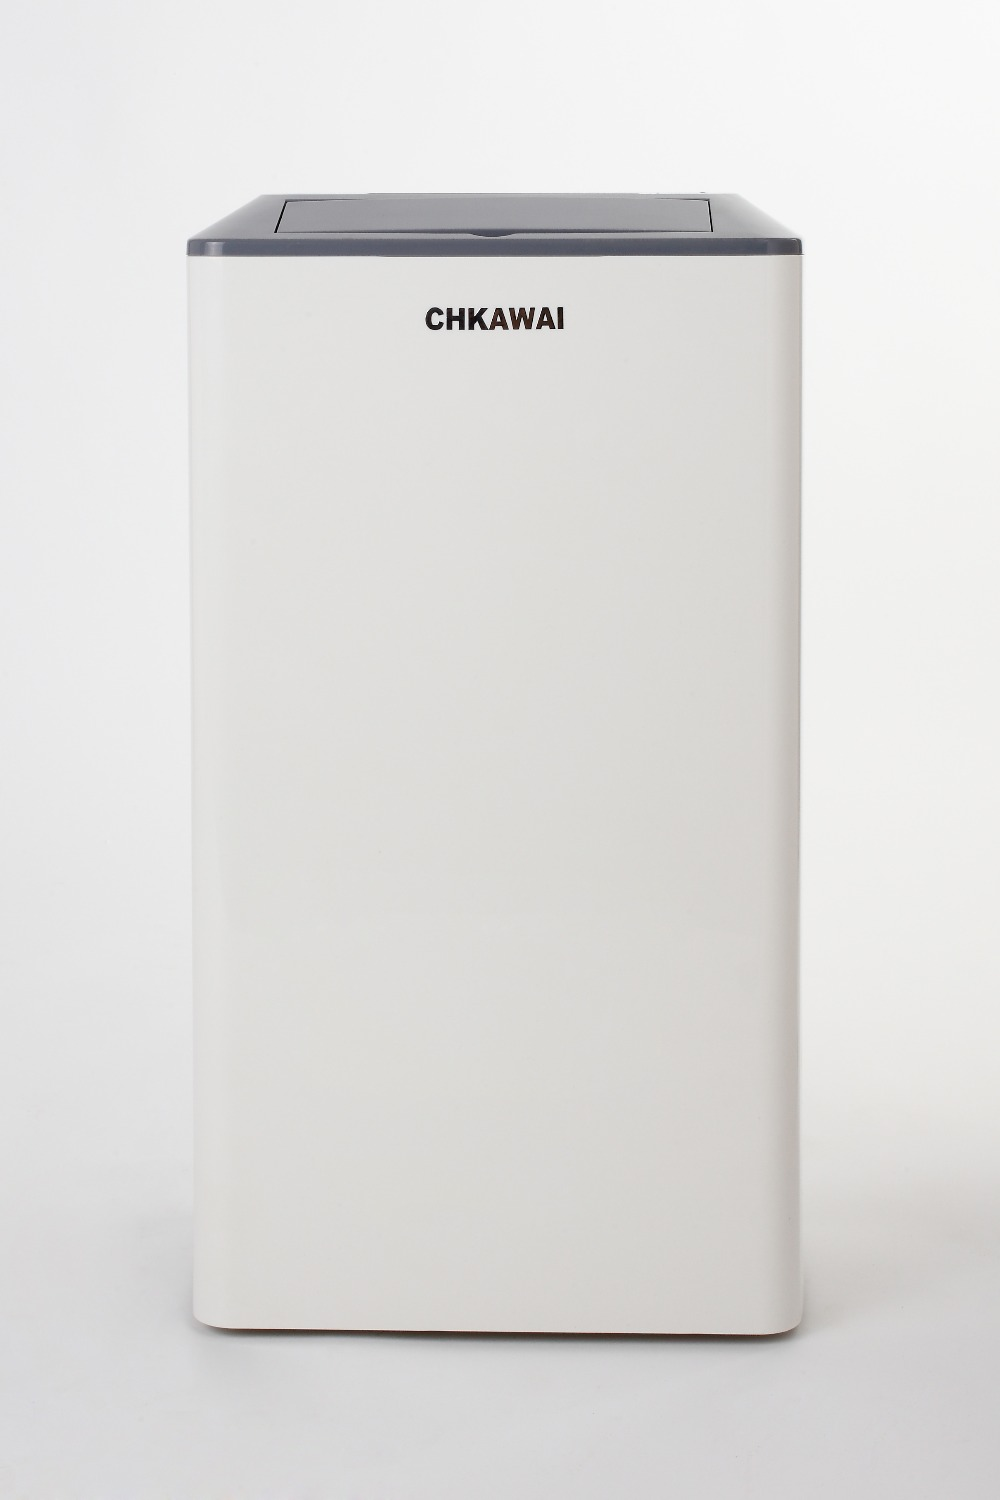 CHKAWAI 12L/24hrs air dryer for home